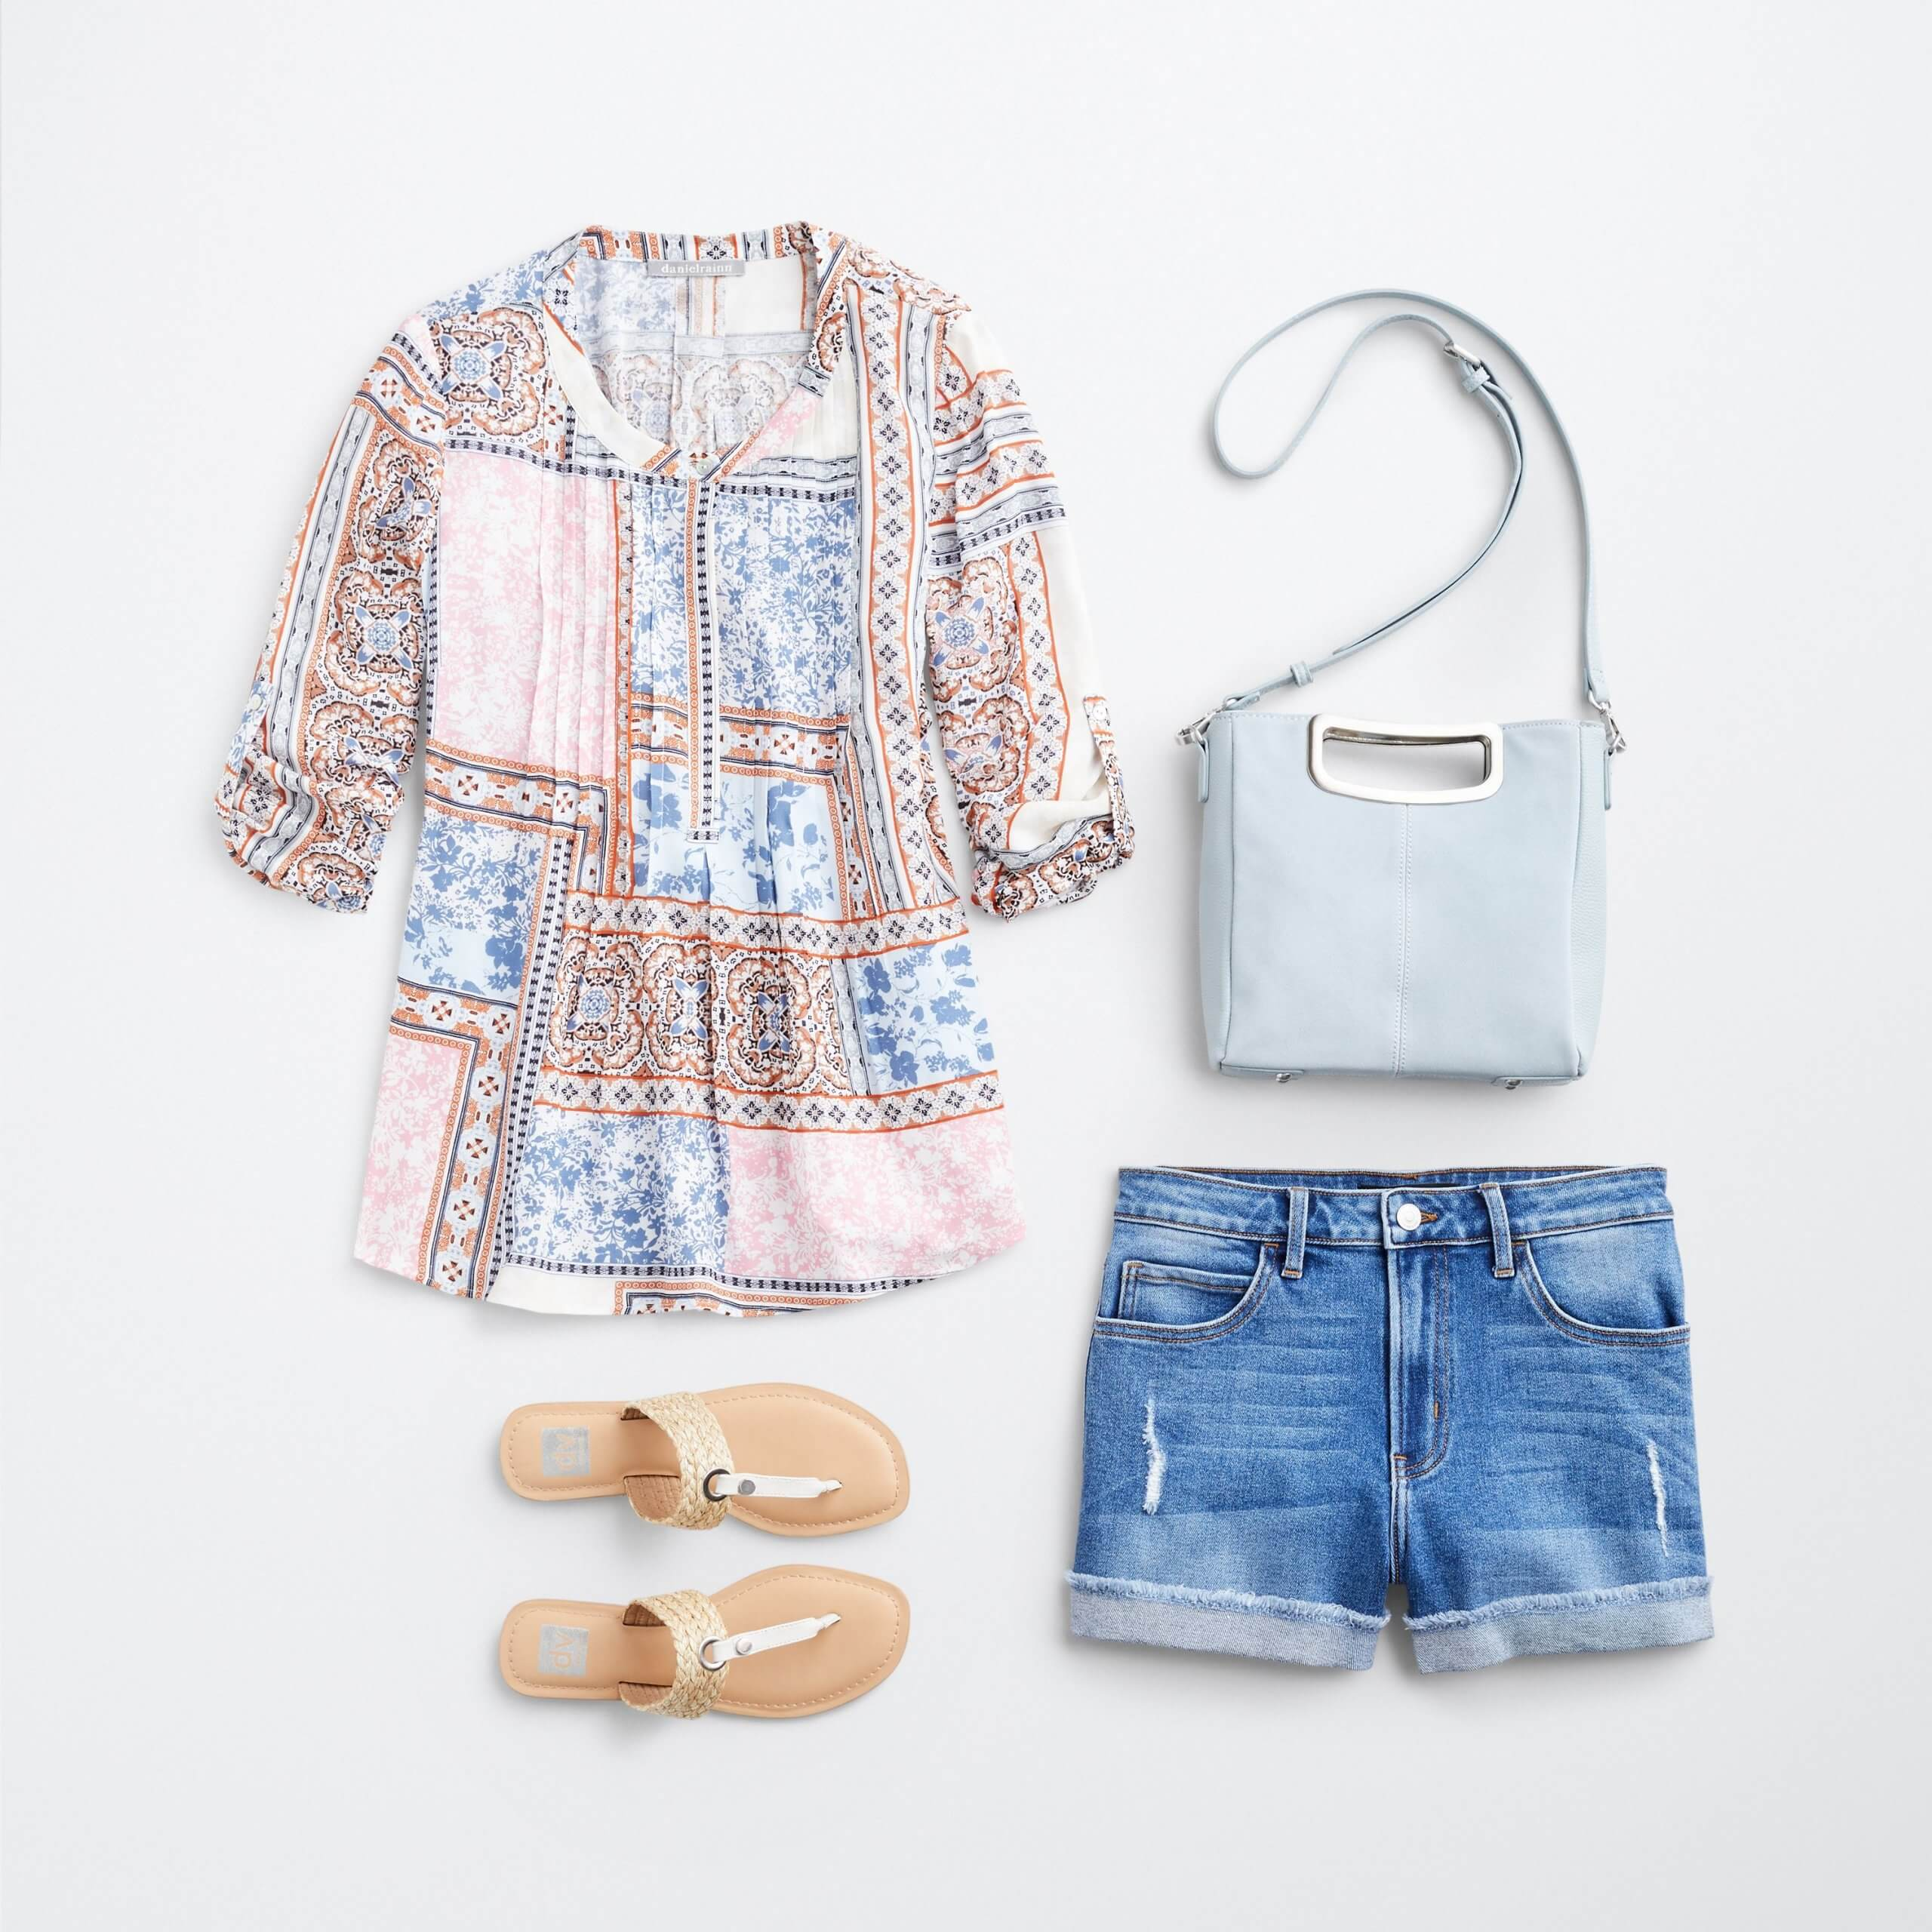 Stitch Fix Women's outfit laydown featuring pink, blue and burnt orange boho print top, white sandals, denim shorts and baby blue crossbody bag.